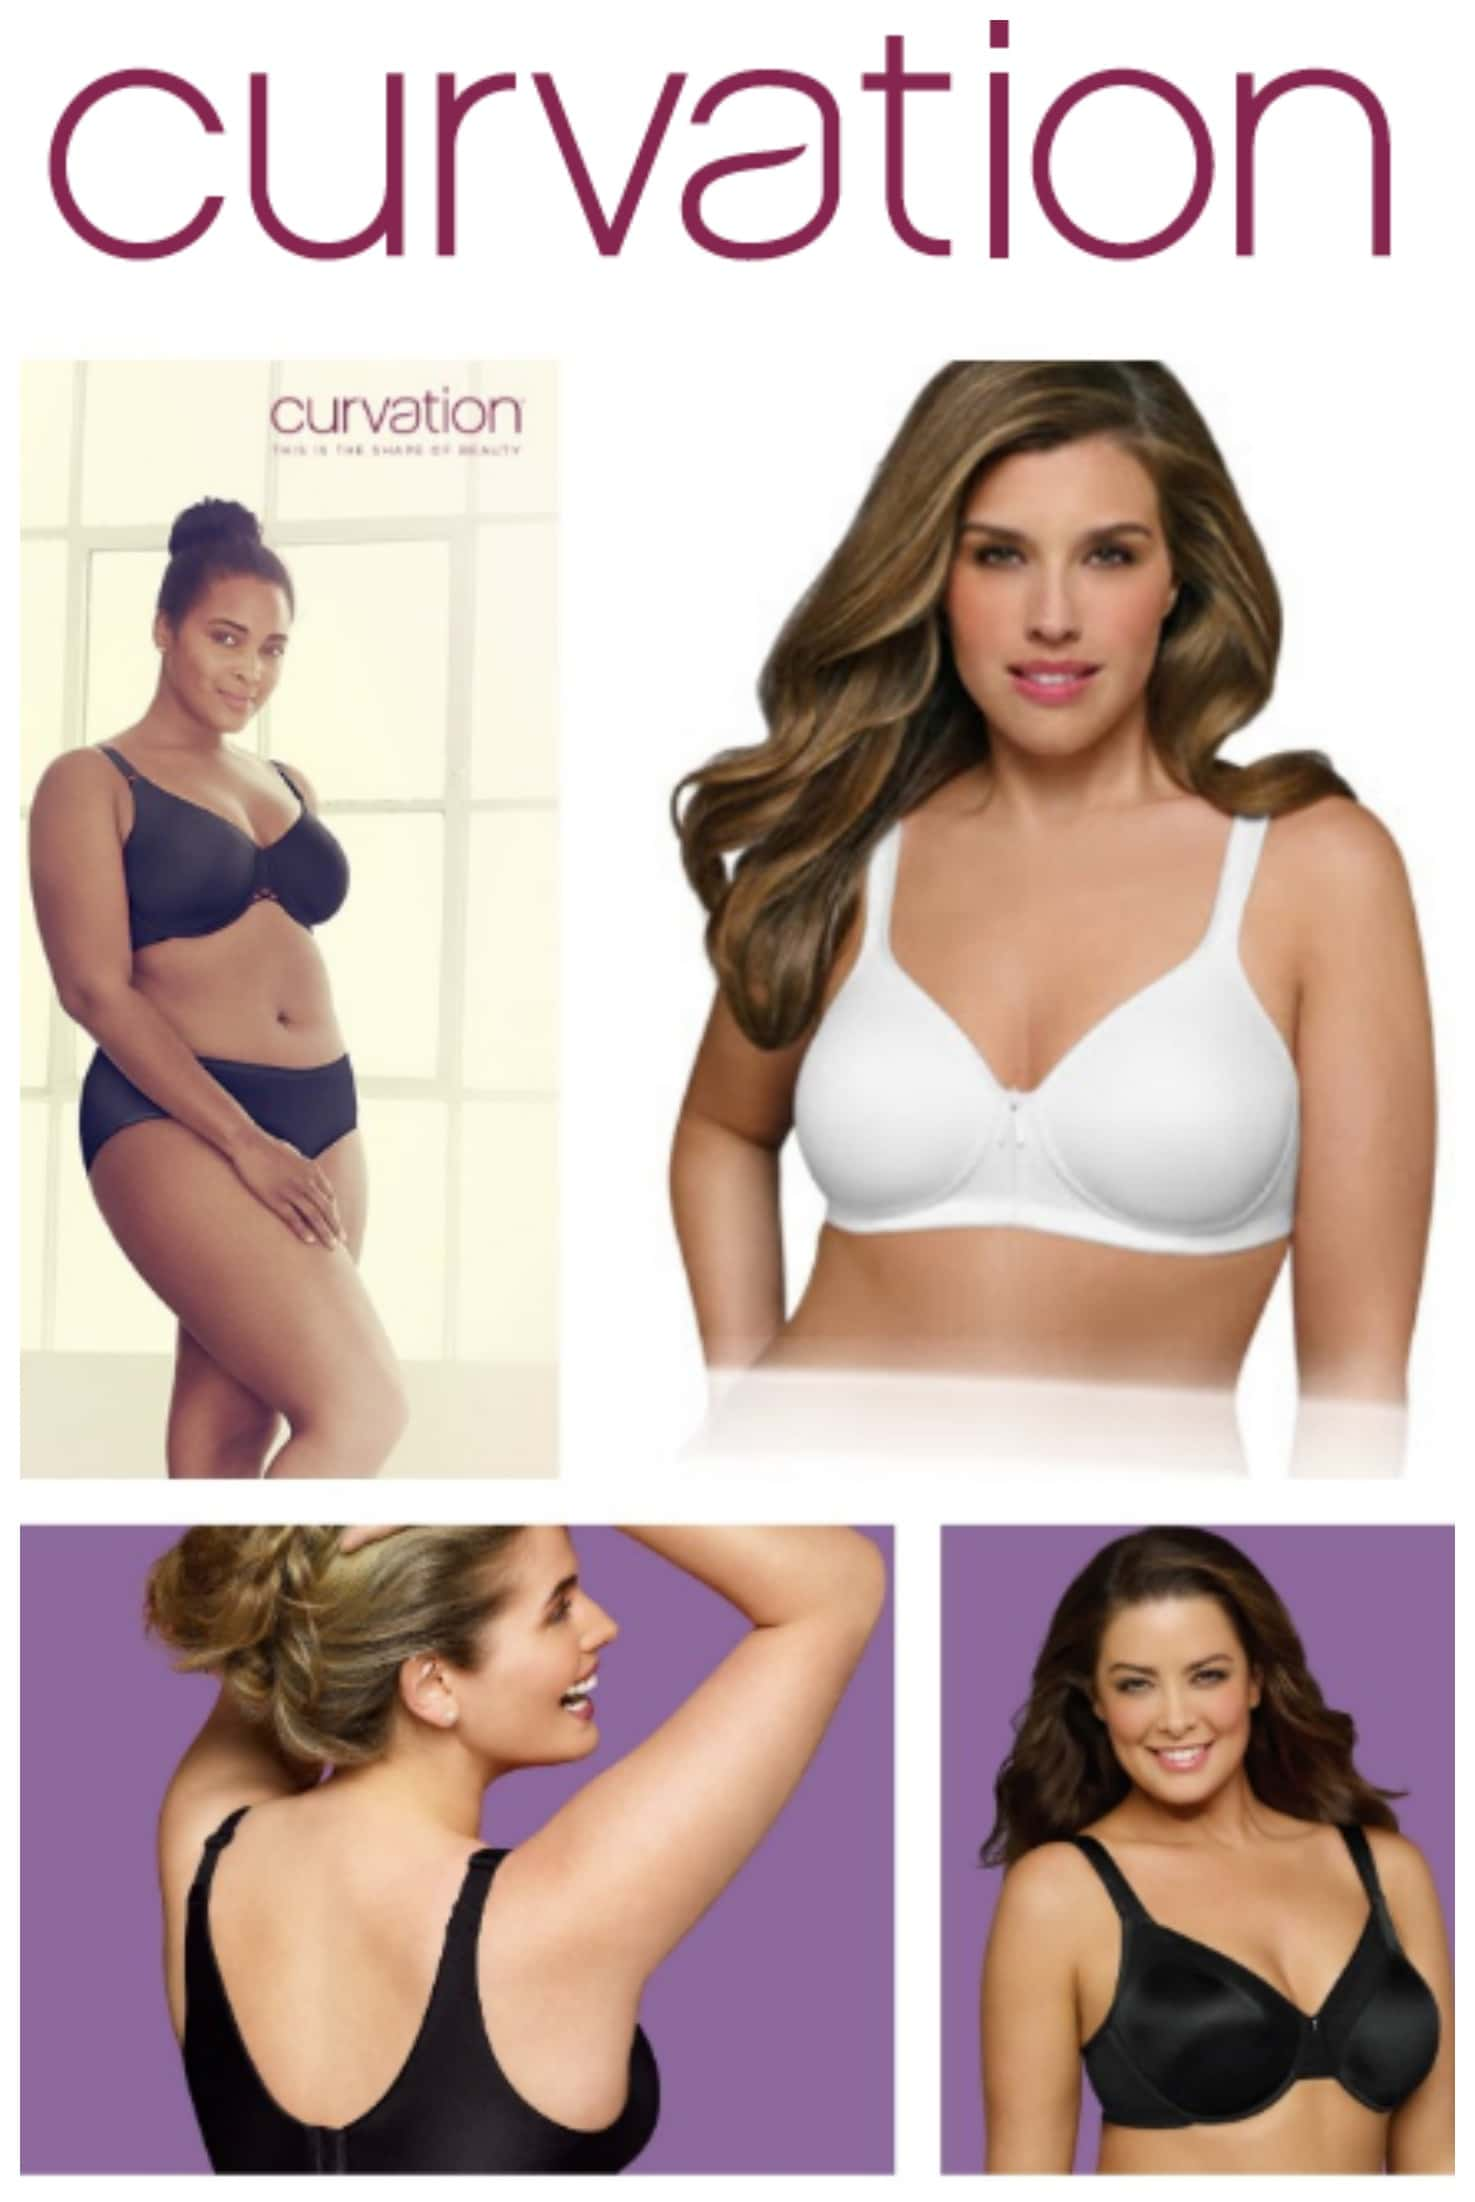 df8a0611d1584 Something Fabulous Is Taking Shape  Curvation Bras - Lady and the Blog